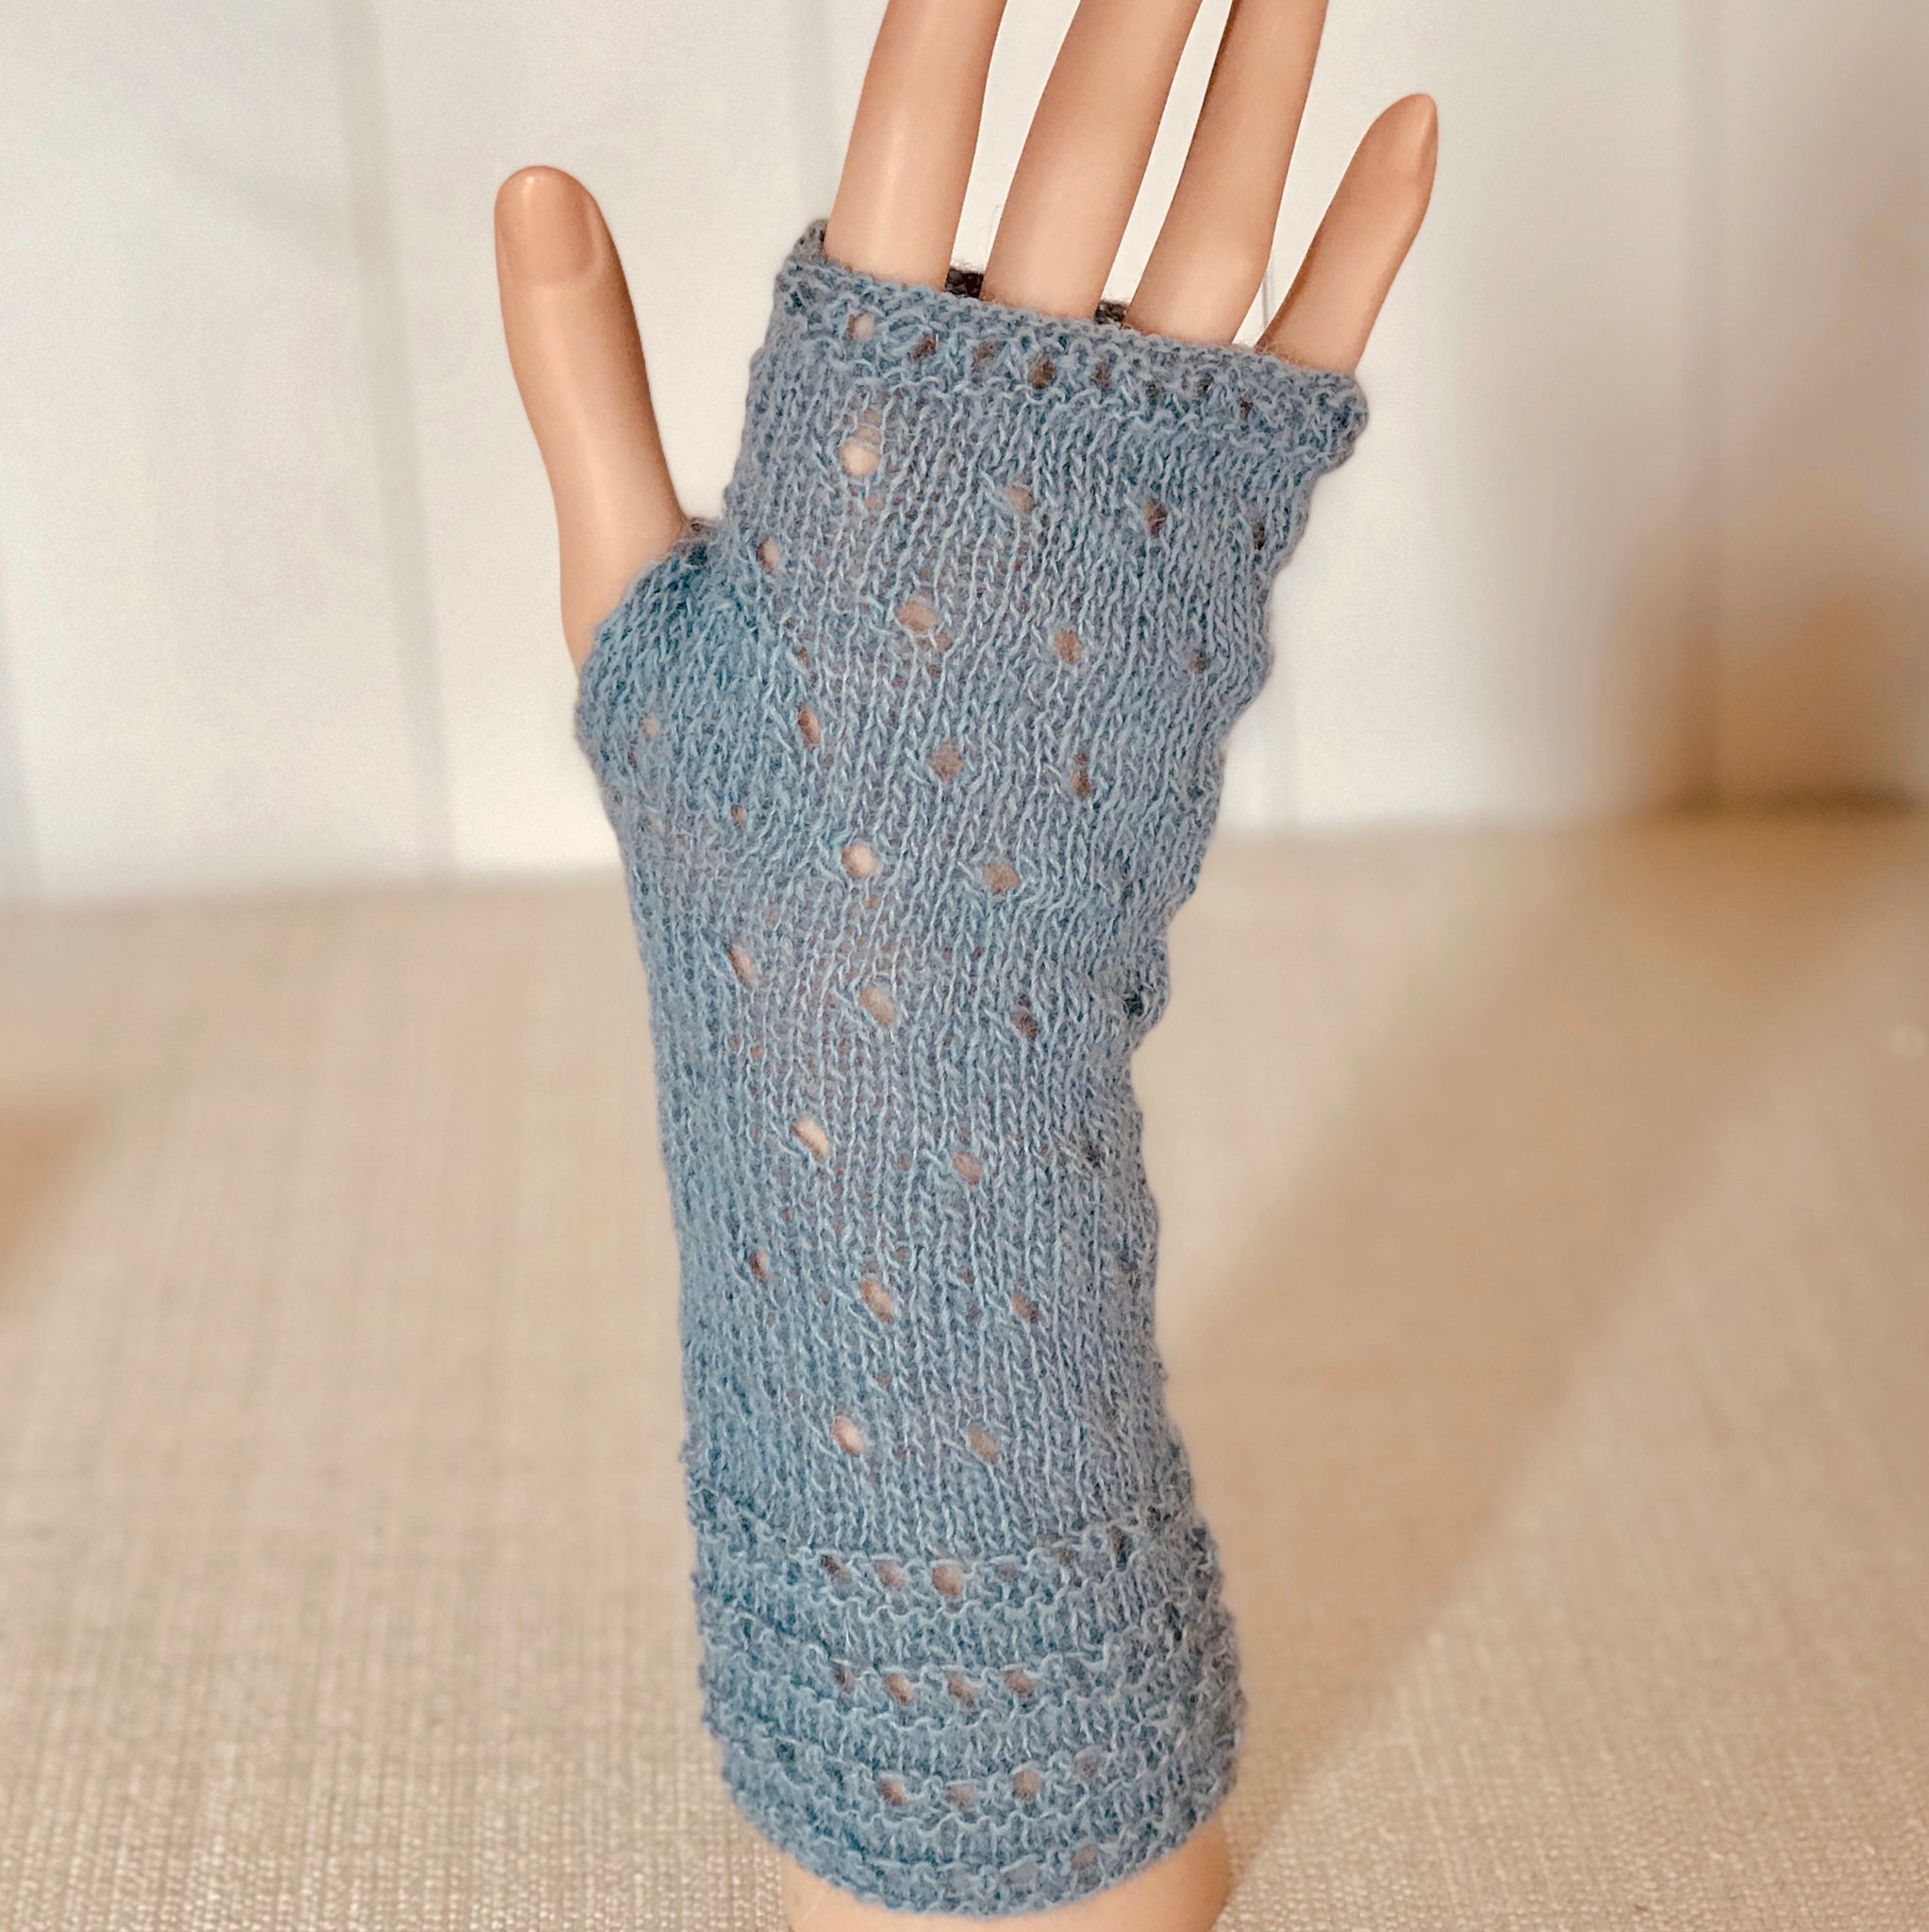 Runched Eyelet Lace Hand Warmers Knitting Kit